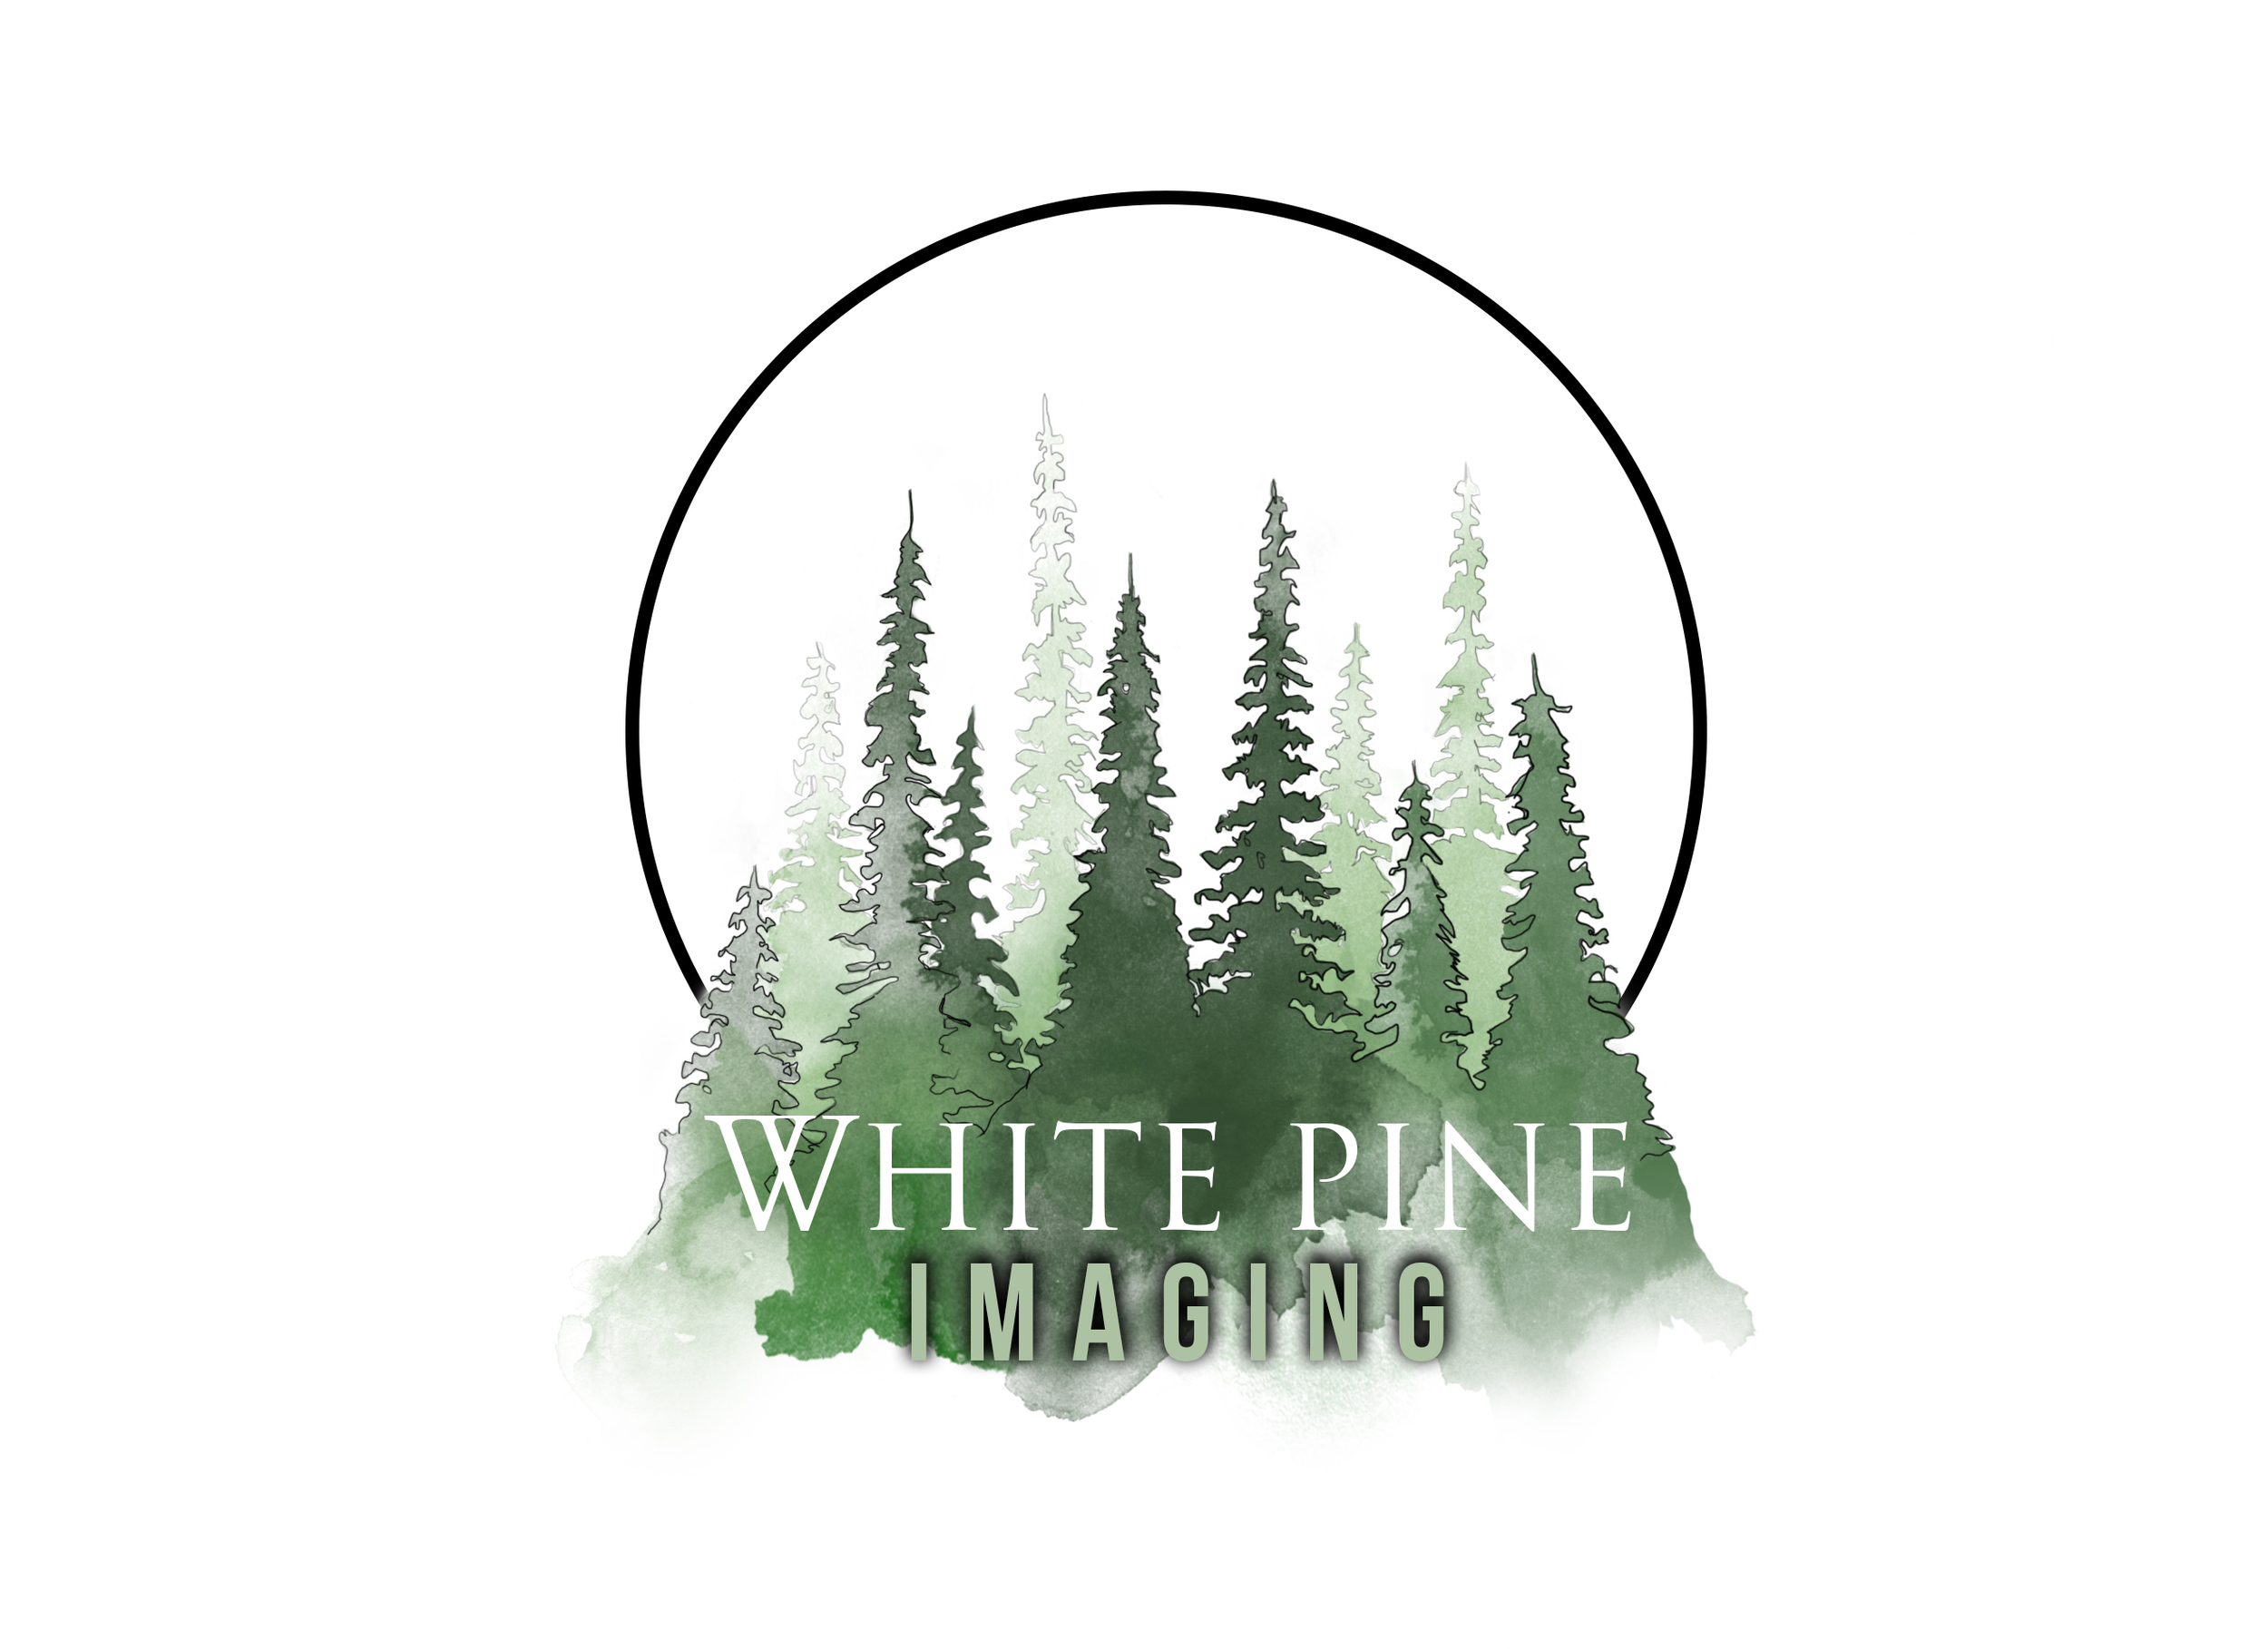 White Pine Imaging logo design 2016